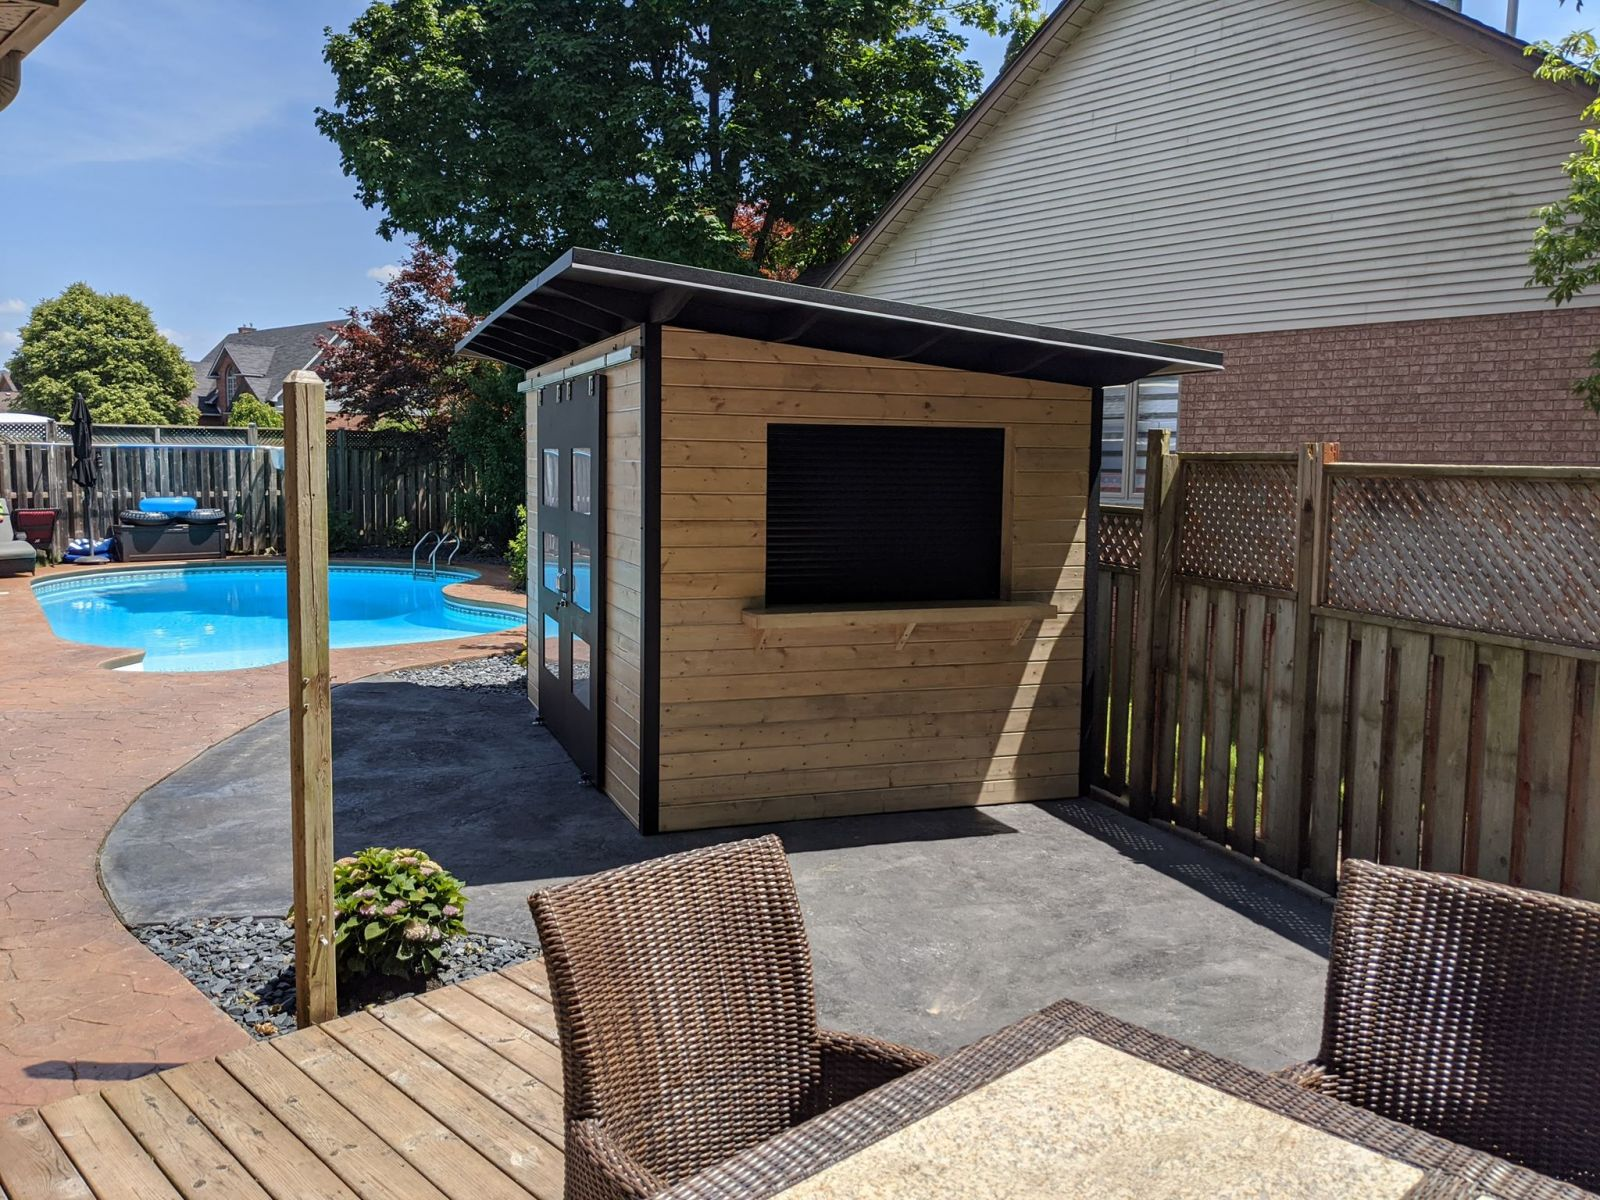 12' x 8' Poolside Bar Shed with Custom Stain and Roll-up Bar